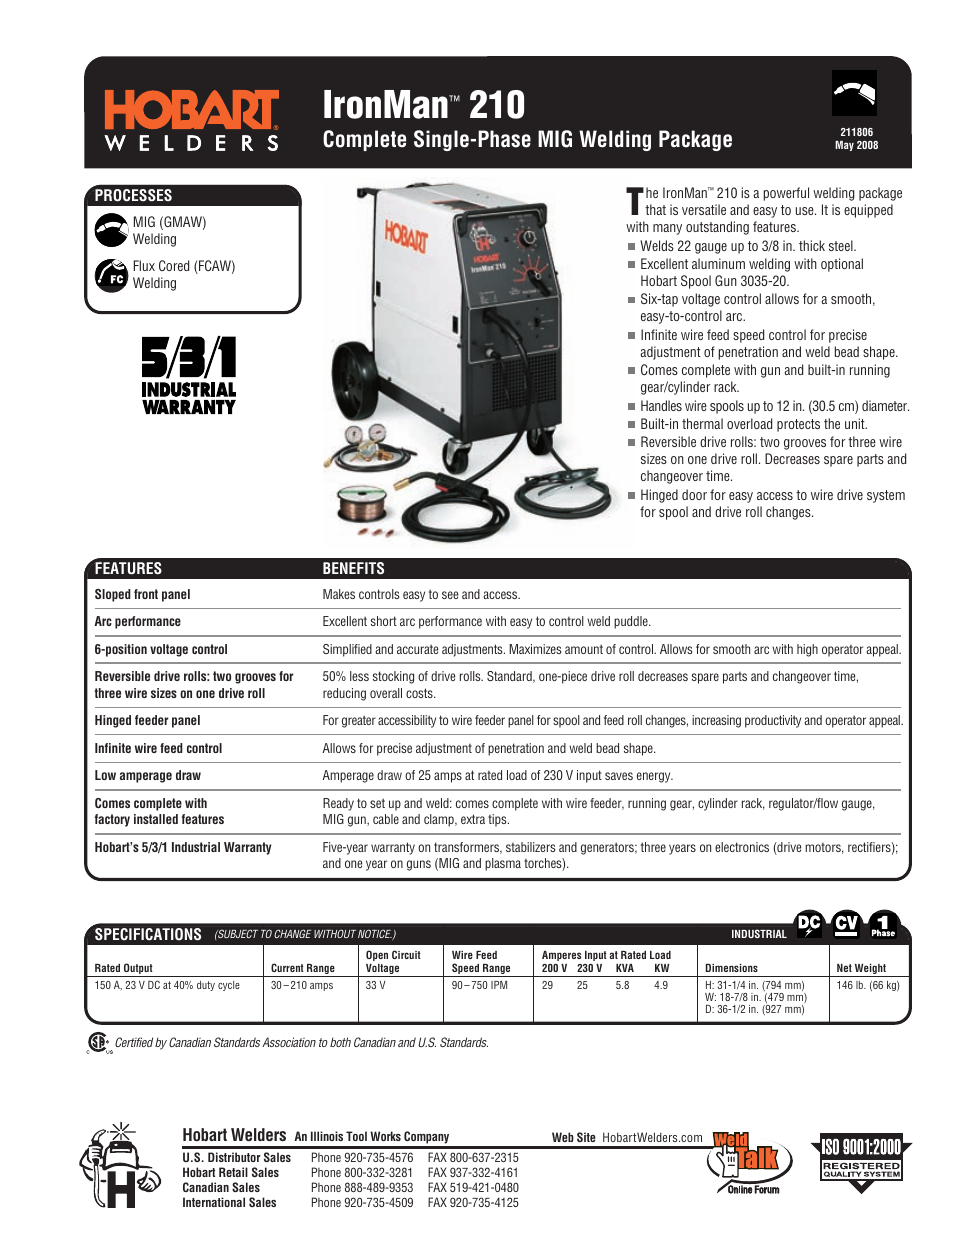 Hobart Welding Products IronMan 210 User Manual | 4 pages